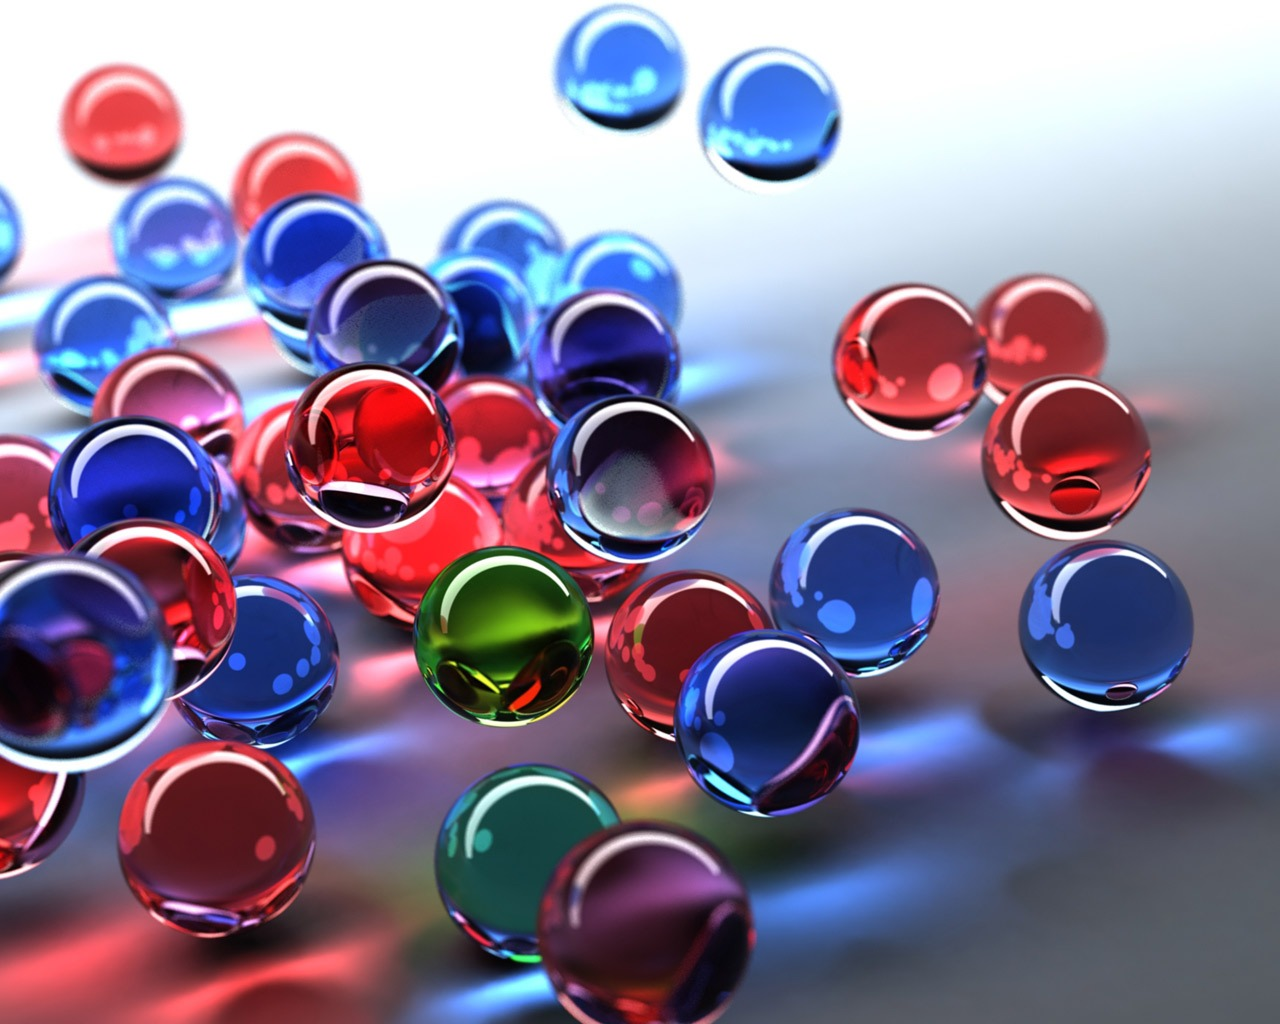 3d Bubbles Wallpaper Abstract 3d Wallpapers In Jpg Format For Free